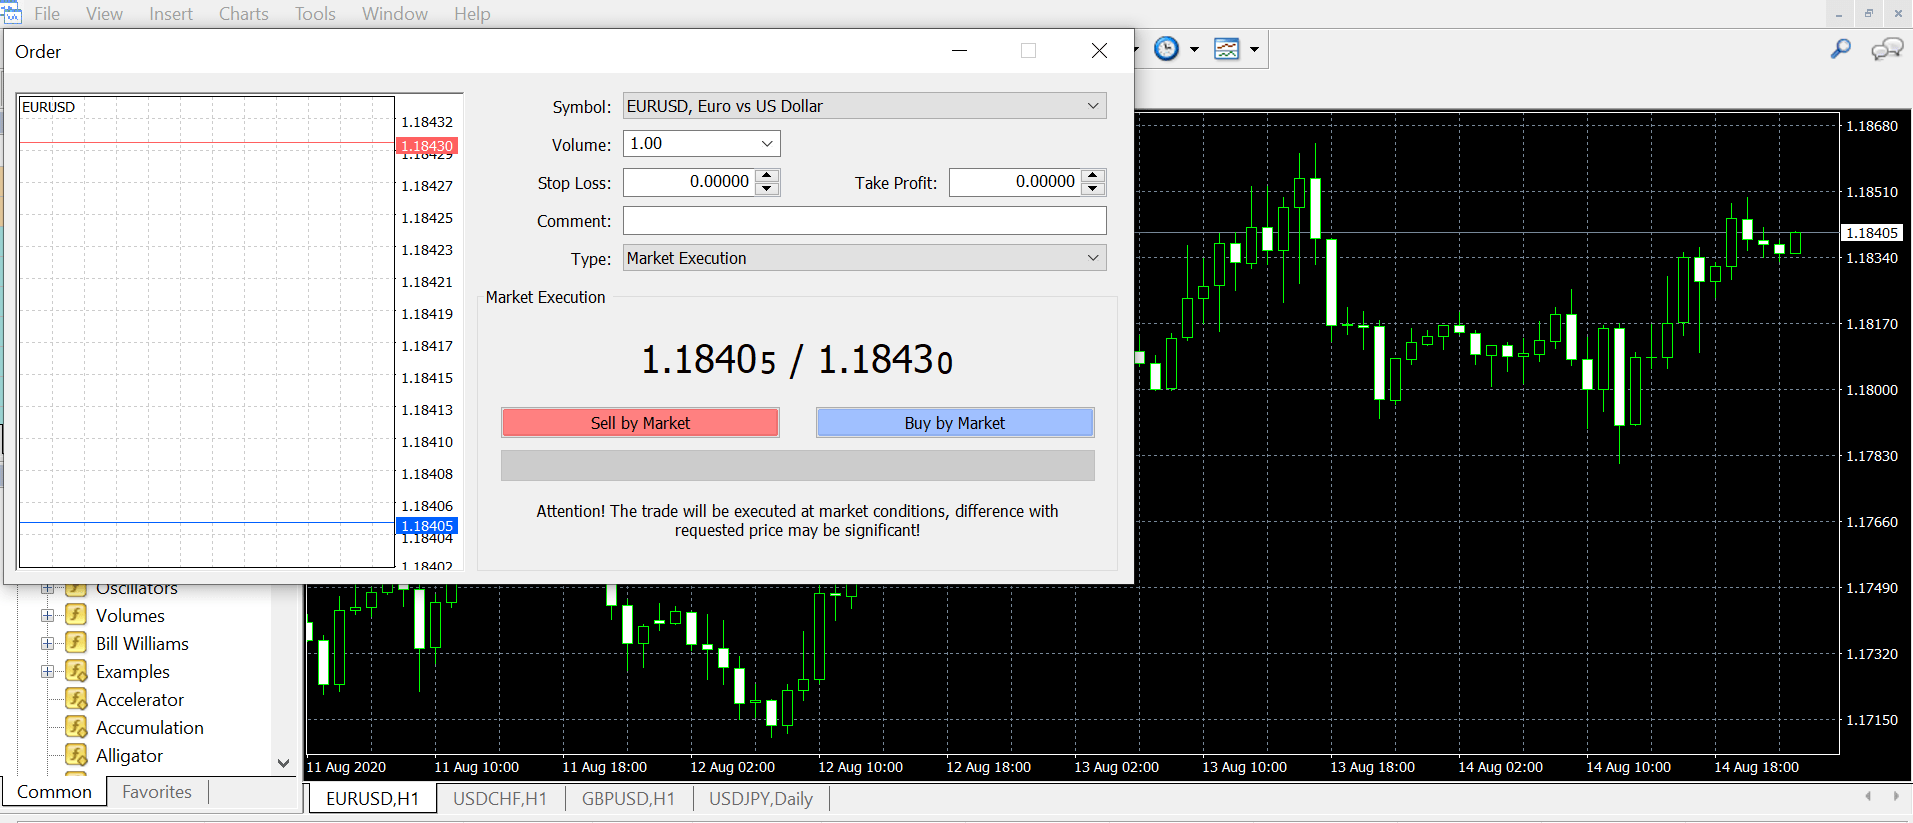 tradingplatforms-metatrader4-whatismt4-and-howtouseit-execute-trade-image